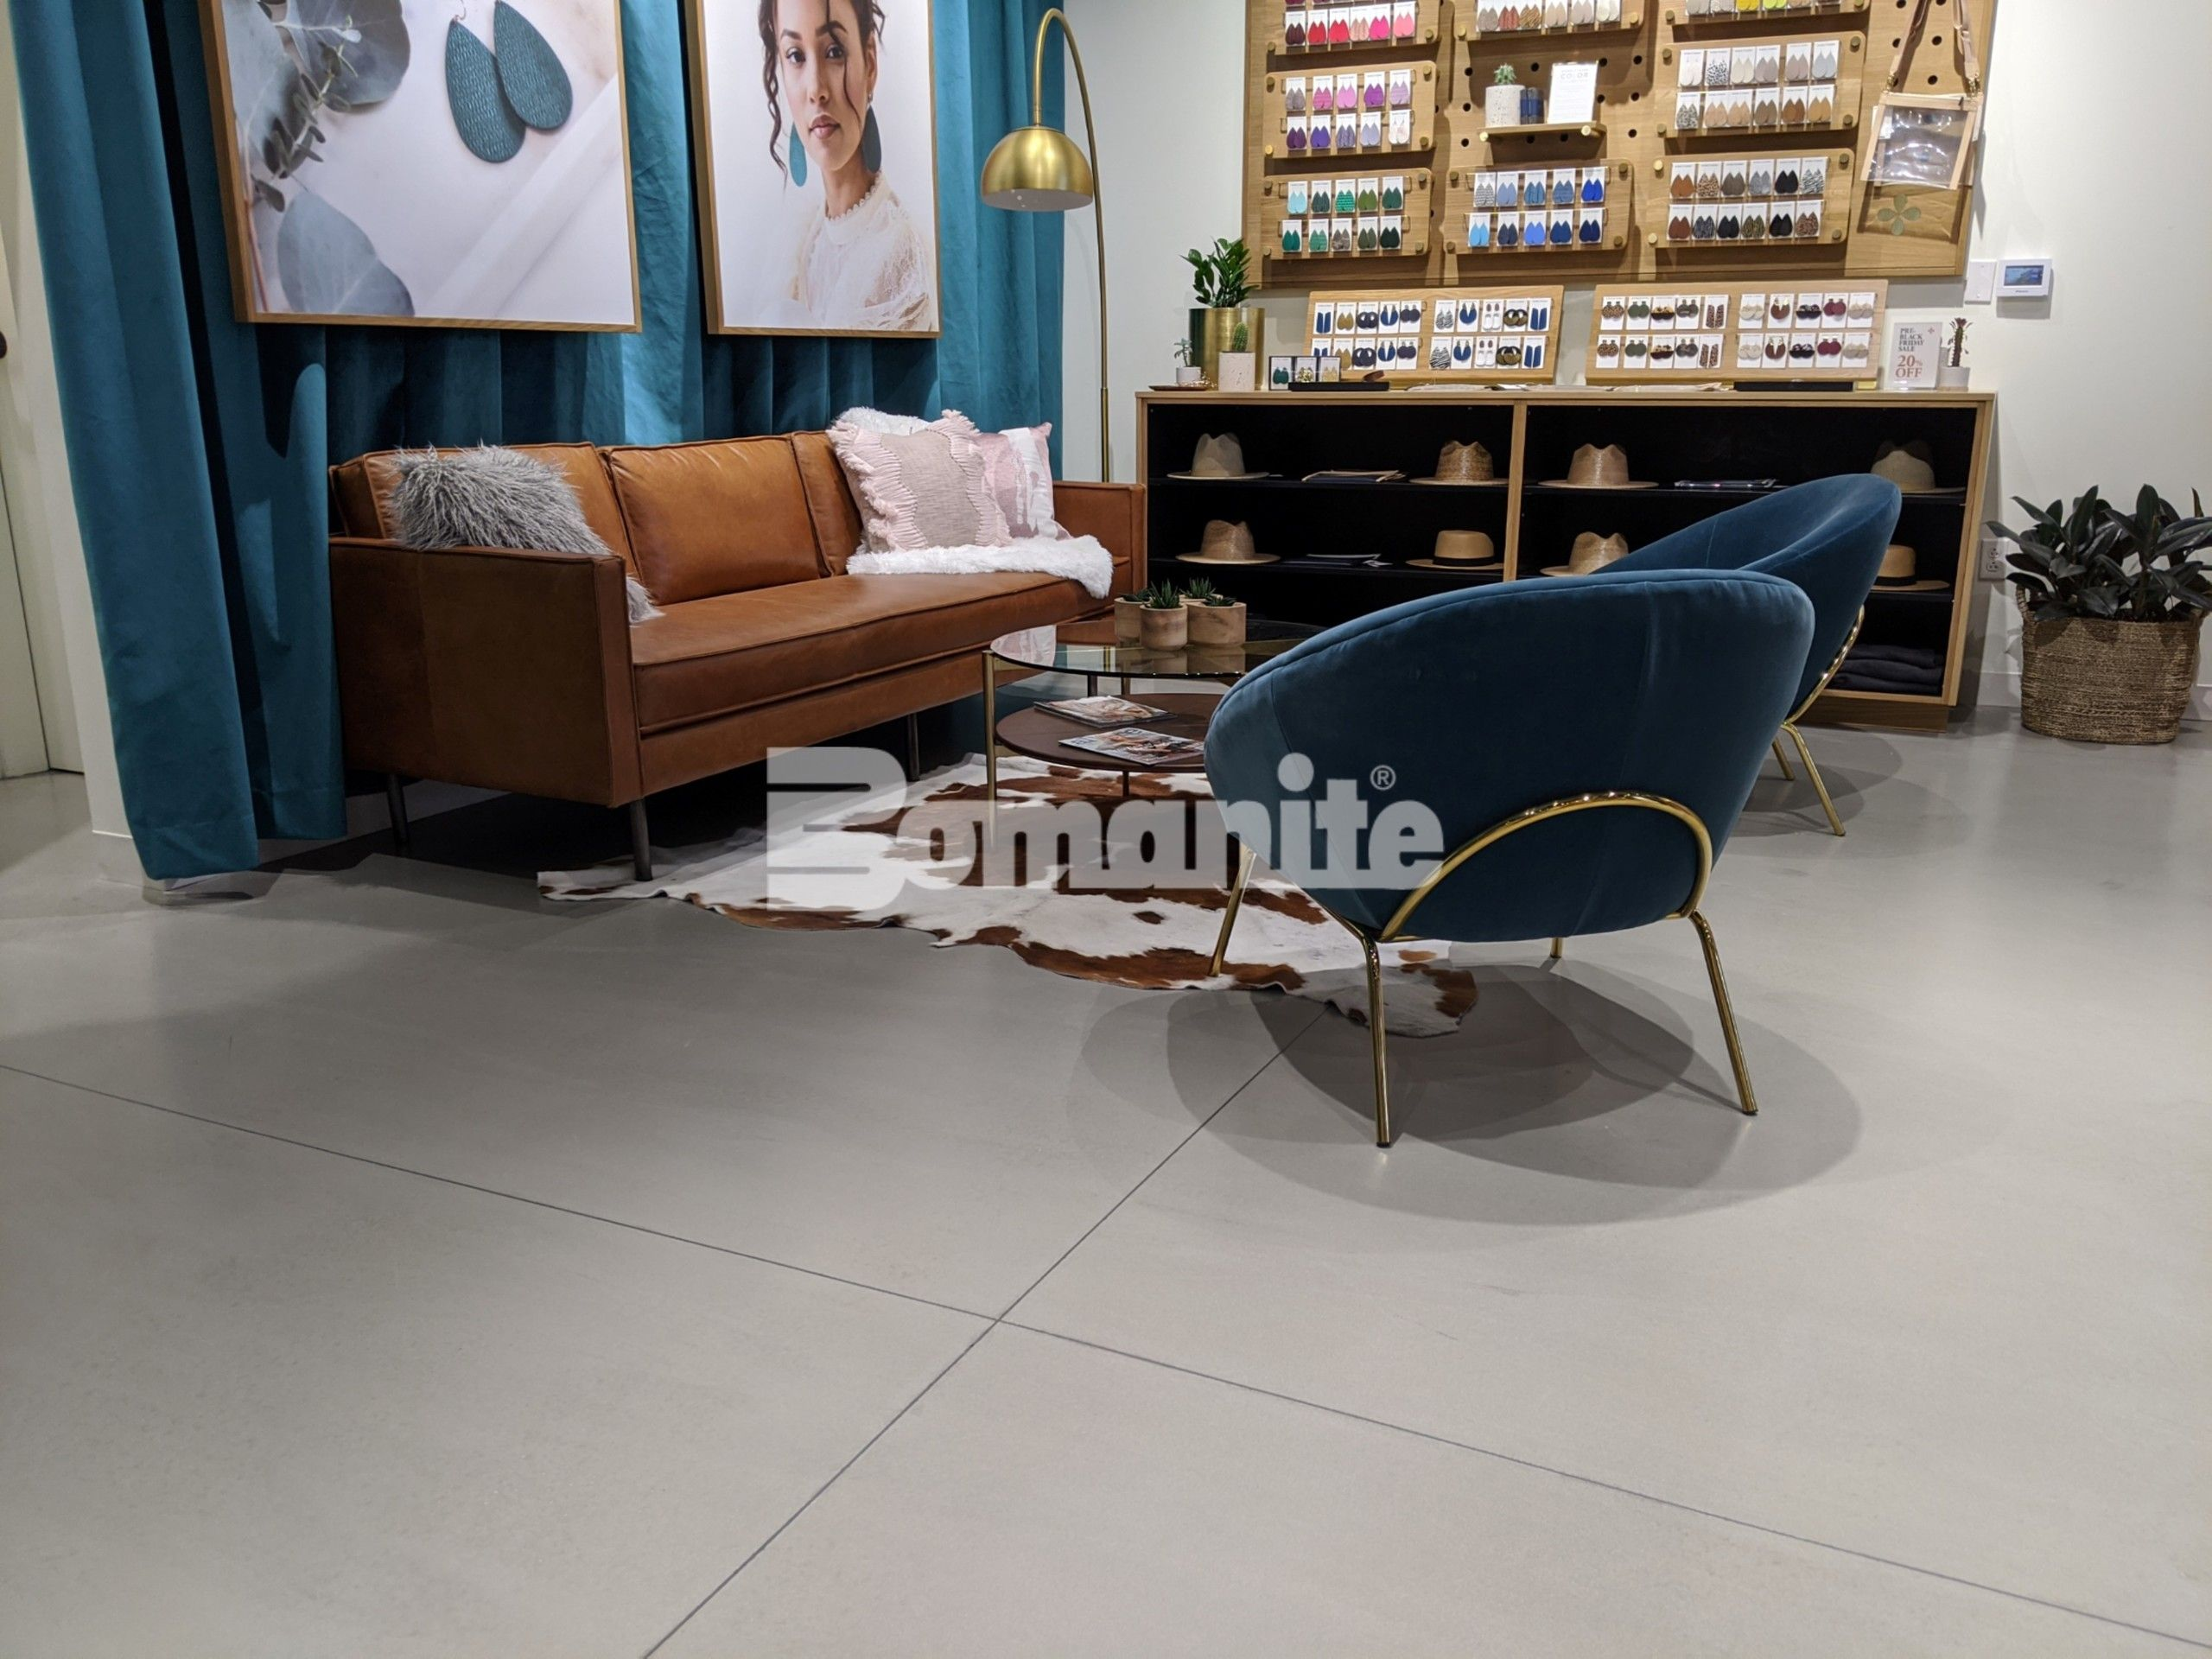 Bomanite Modena SL Custom Polished decorative concrete overlay installed in Nickel & Suede's new flagship store by Musselman & Hall Contractors, LLC in Kansas City, MO.